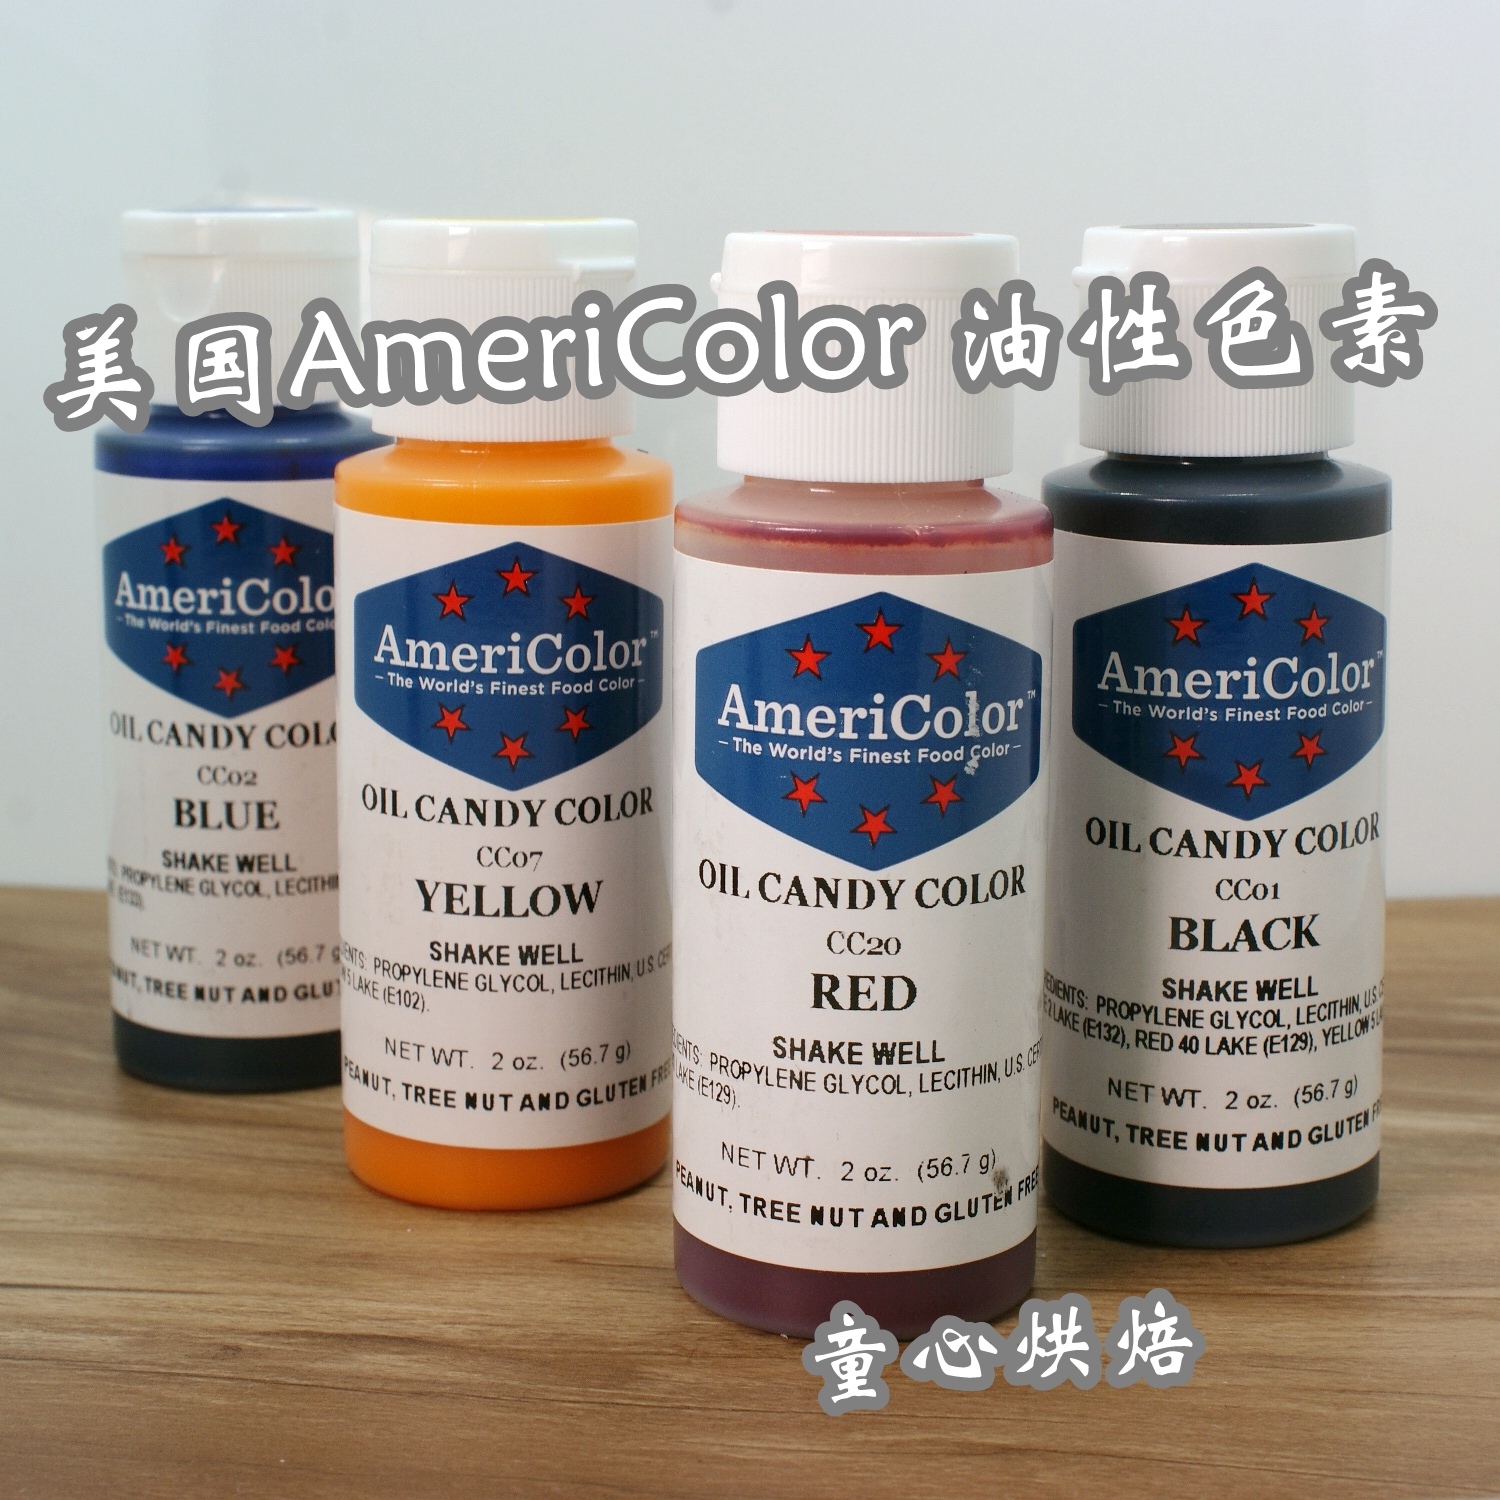 Best Americolor Oil Based Food Coloring Images - Coloring 2018 ...